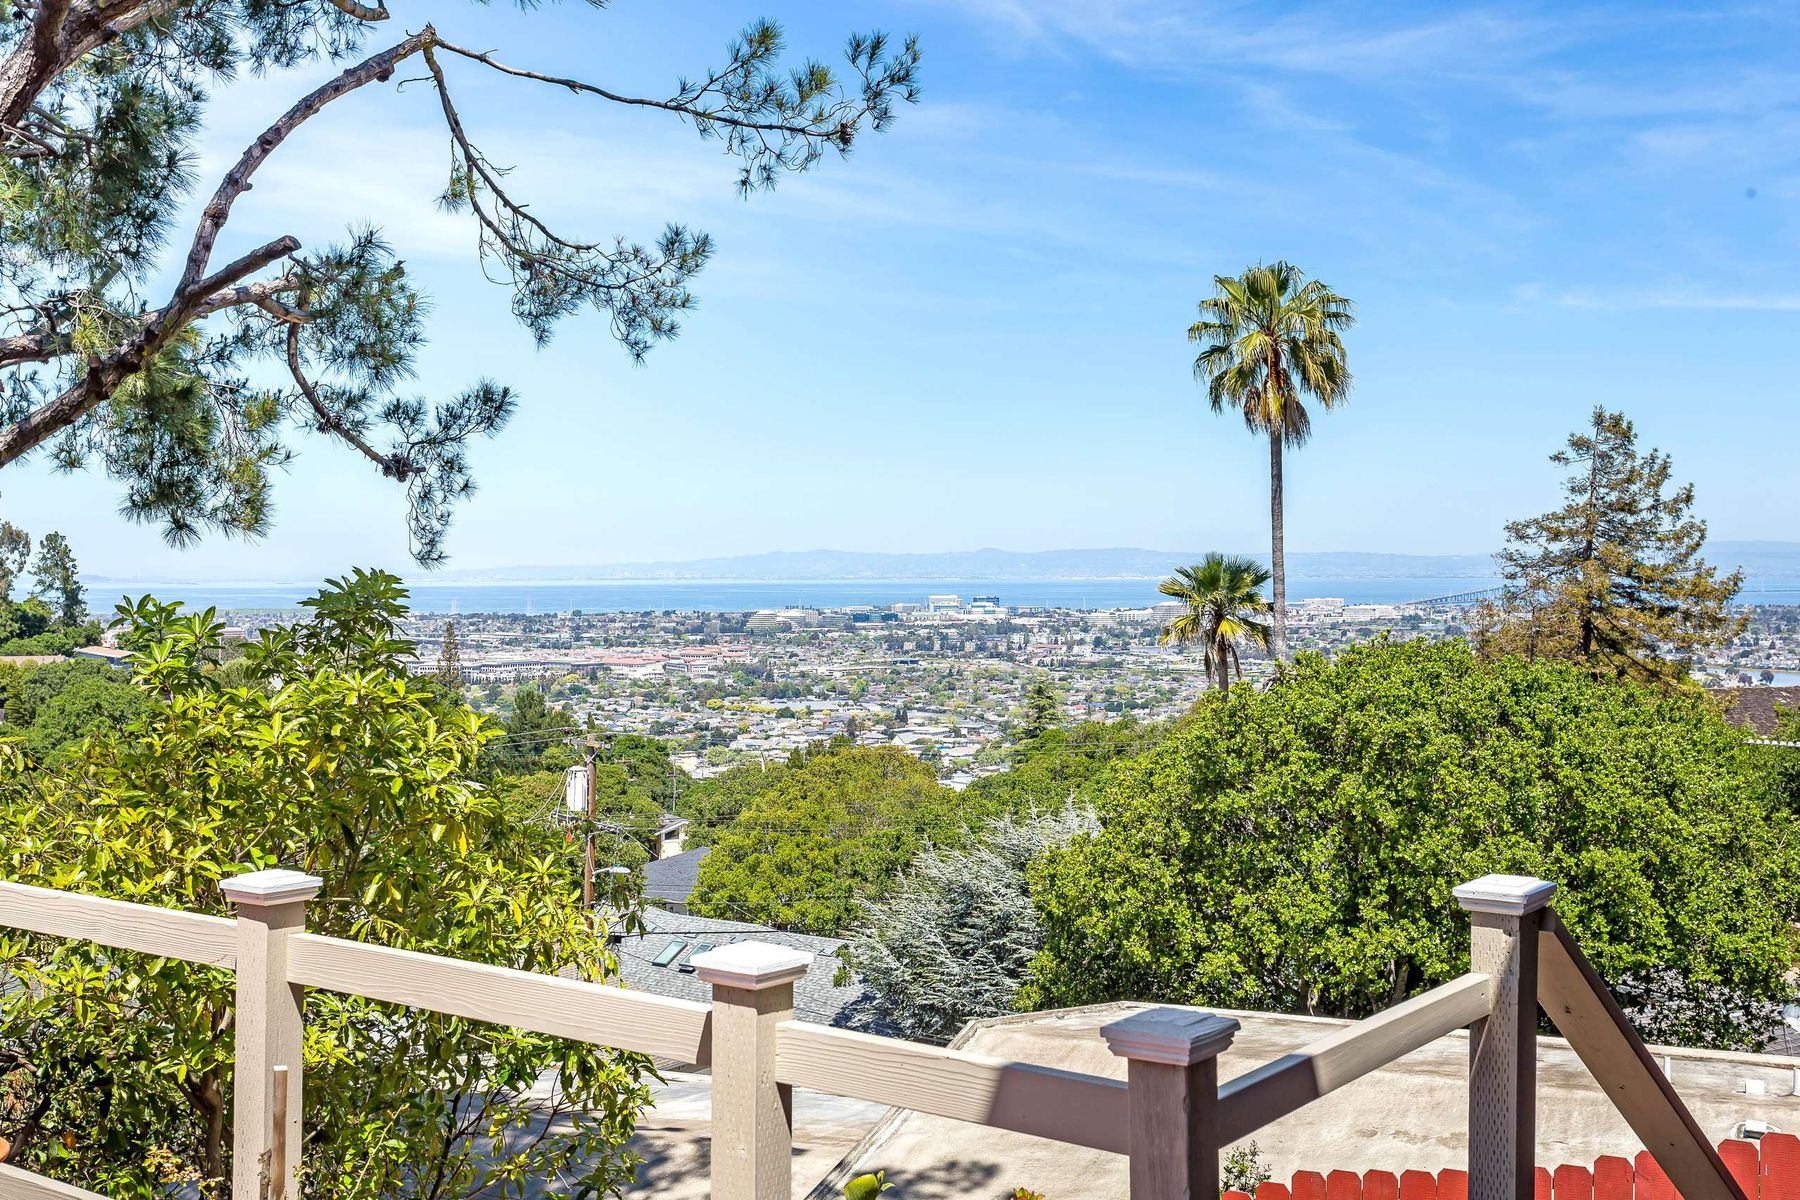 Single Family Home for Active at Belmont Home with Panoramic Bay Views 1805 Oak Knoll Dr Belmont, California 94002 United States